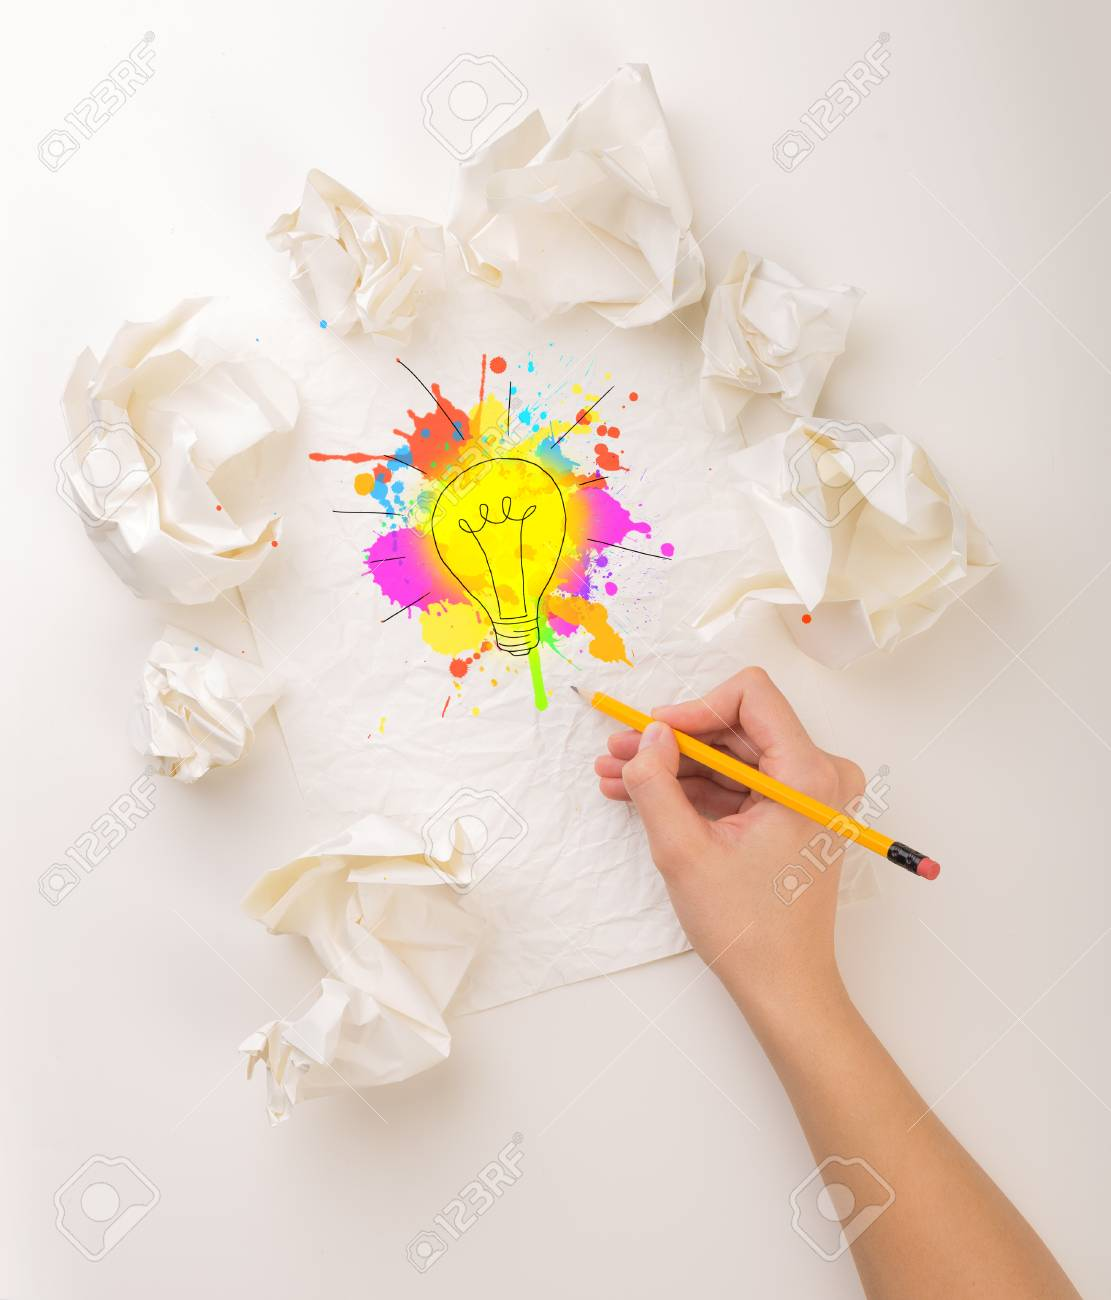 female hand next to a few crumpled paper balls drawing a colorful